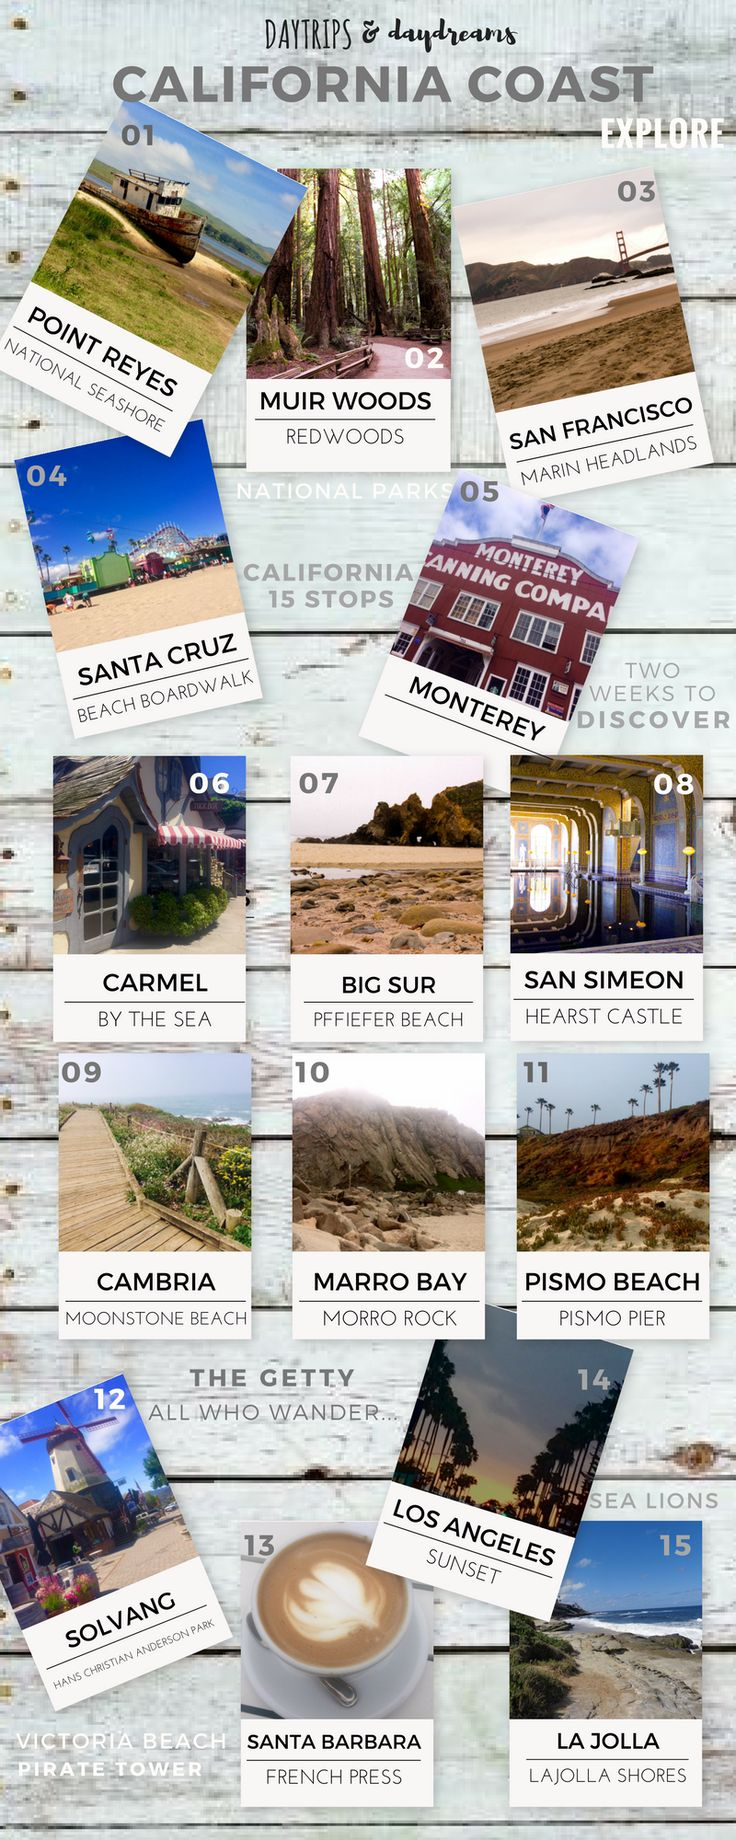 California Coast Map and Itinerary. 15 stops down the coast from San Francisco…